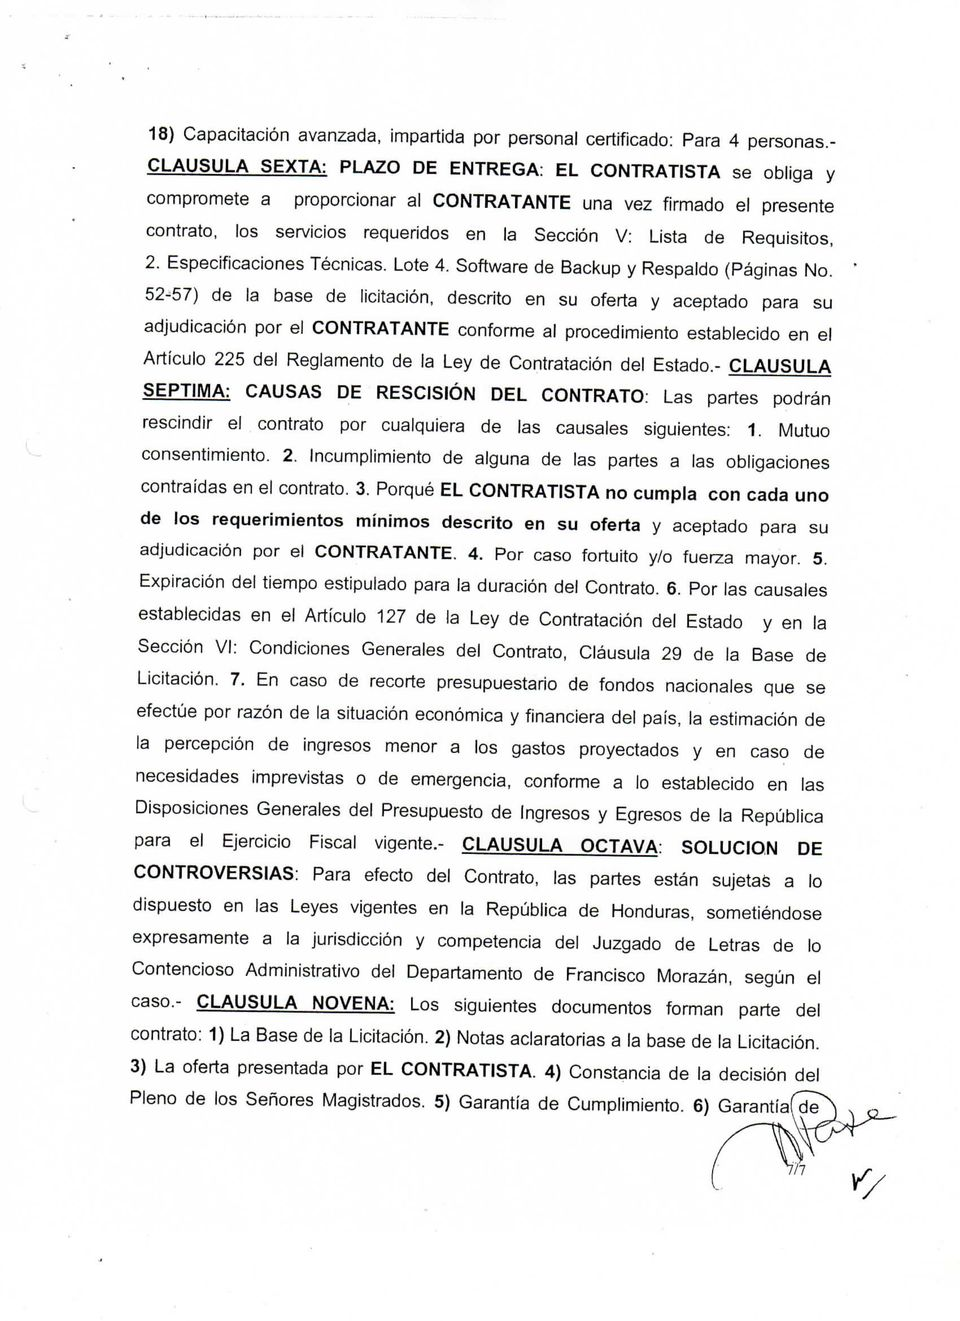 Requisitos, 2. Especificaciones Técnicas. Lote 4. Software de Backup y Respaldo (Páginas No.